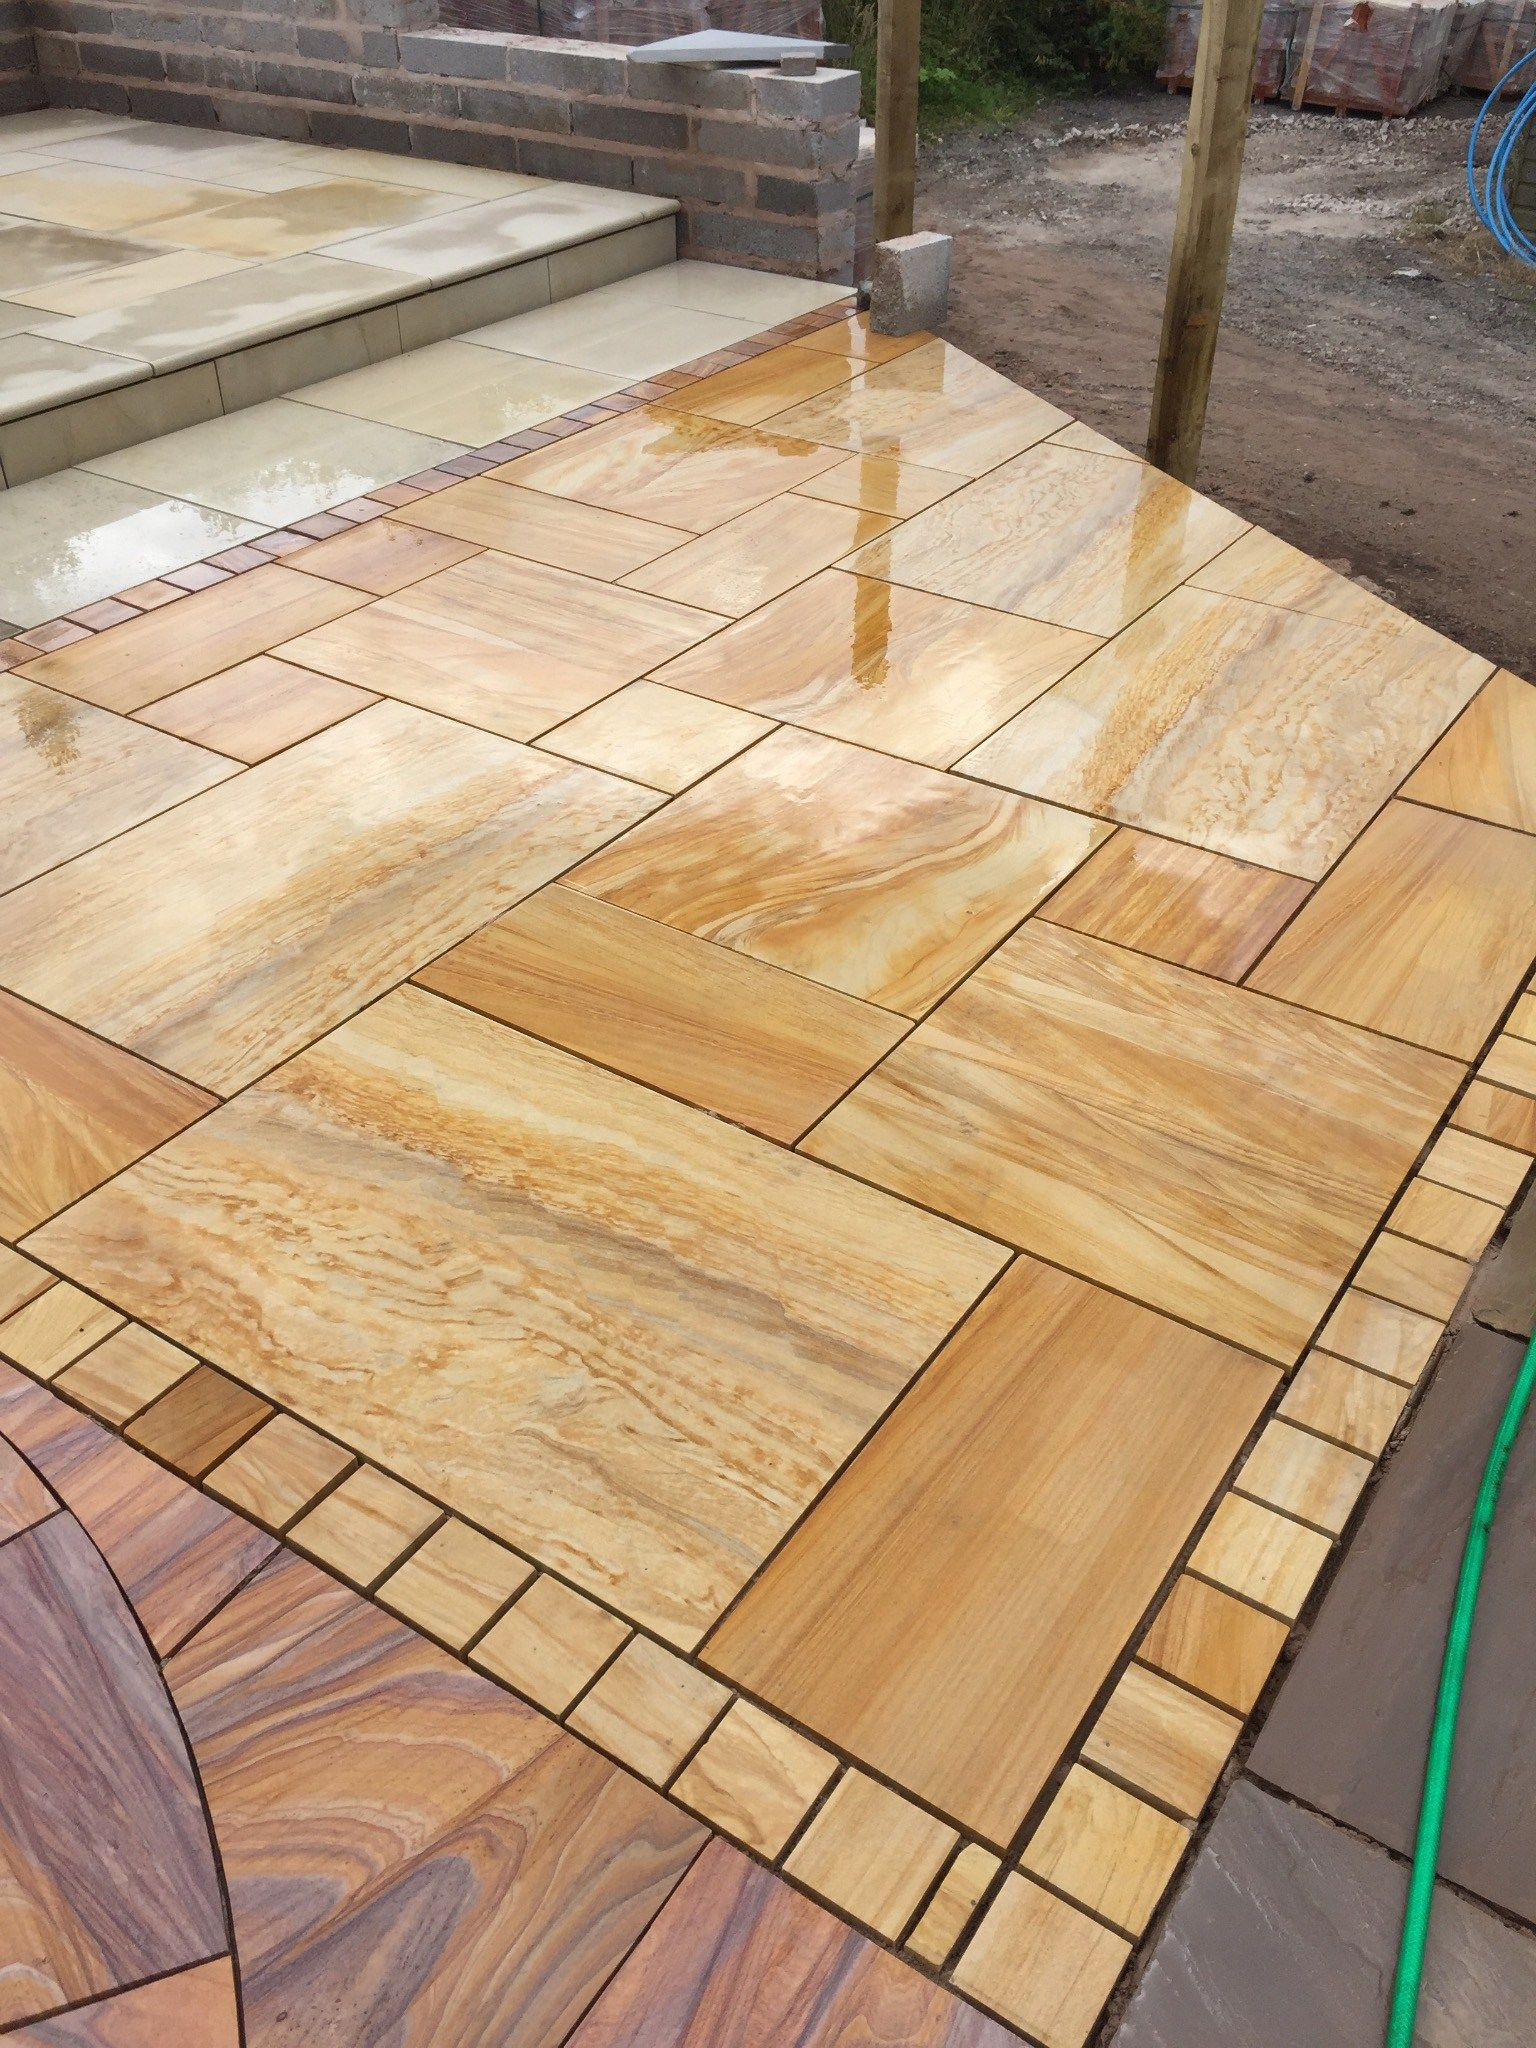 Teakwood Sawn Smooth Sandstone Paving Slabs From Cheshire Sandstone   UK  Suppliers Of Indian Sandstone